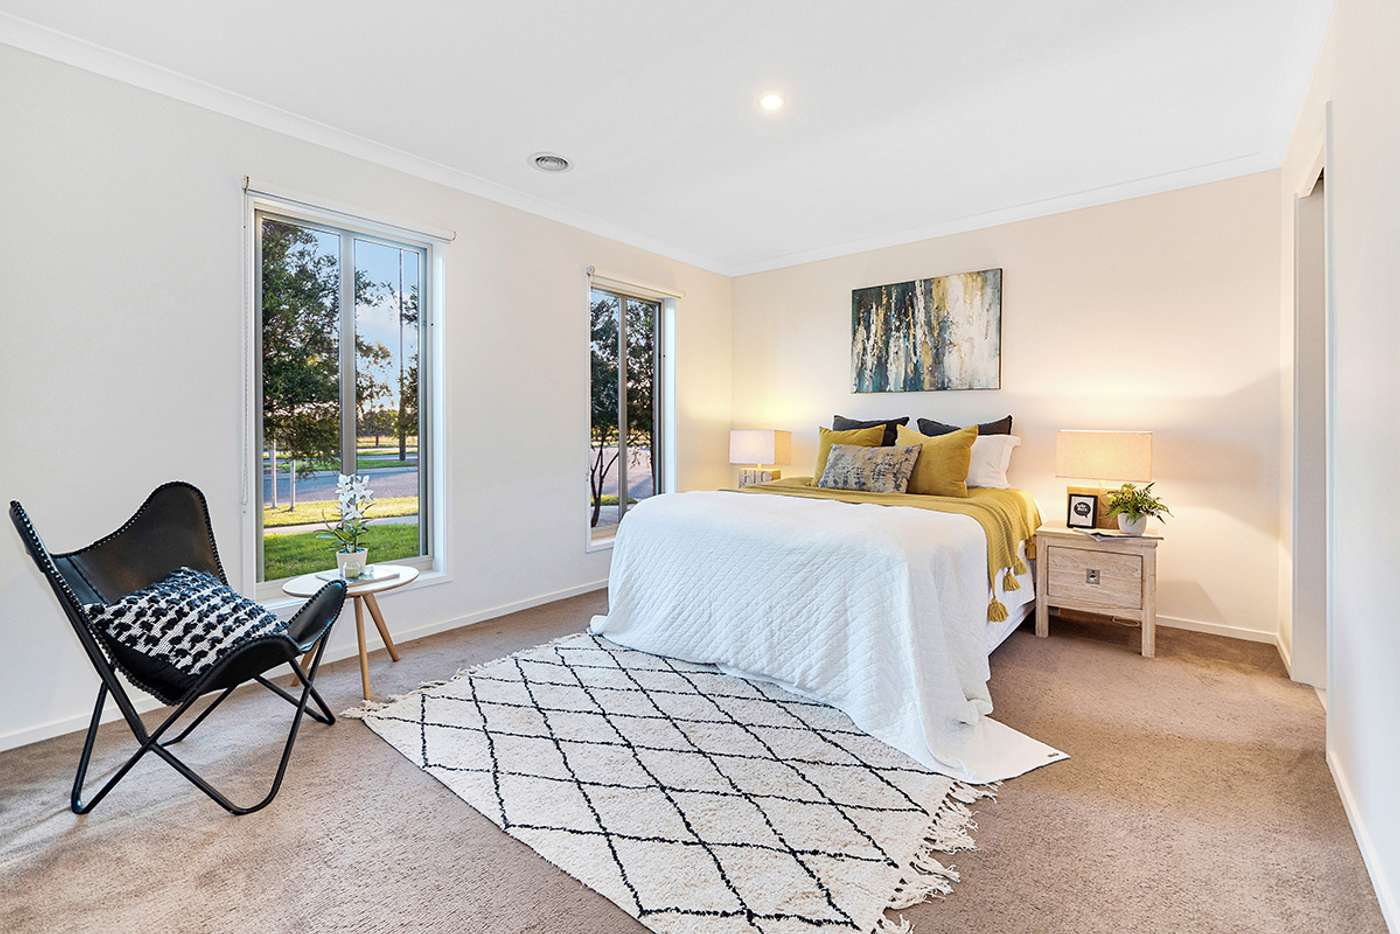 Sixth view of Homely house listing, 14 Boland Drive, Lyndhurst VIC 3975